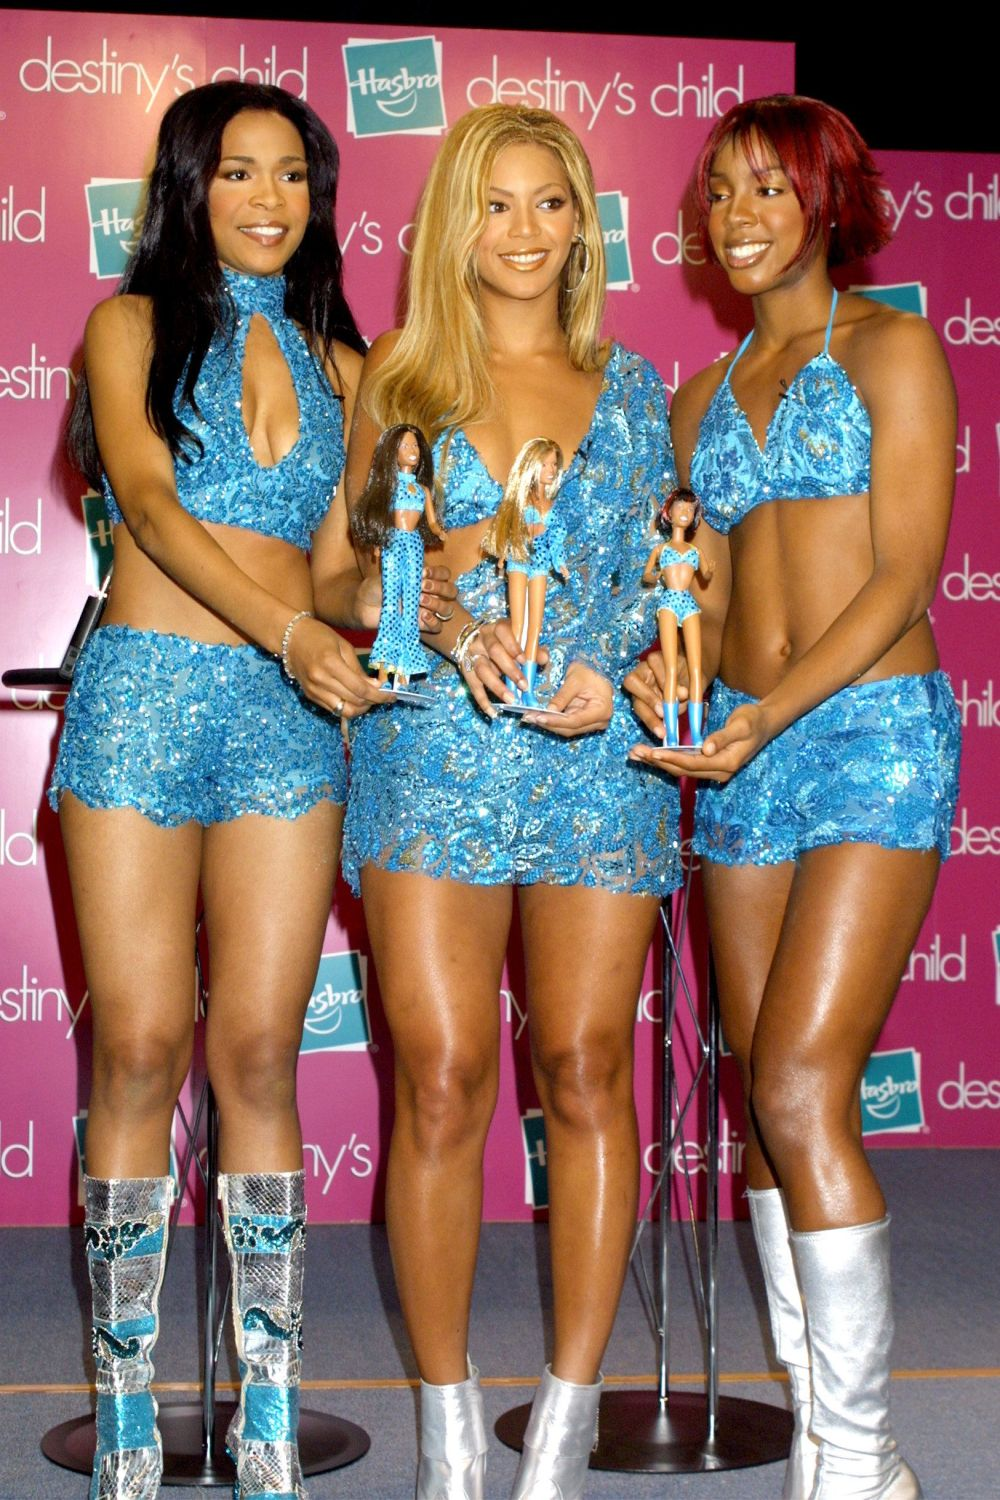 Williams, Knowles and Rowland posing for a photograph with their Destiny's Child dolls from Hasbro Inc. in New York City.